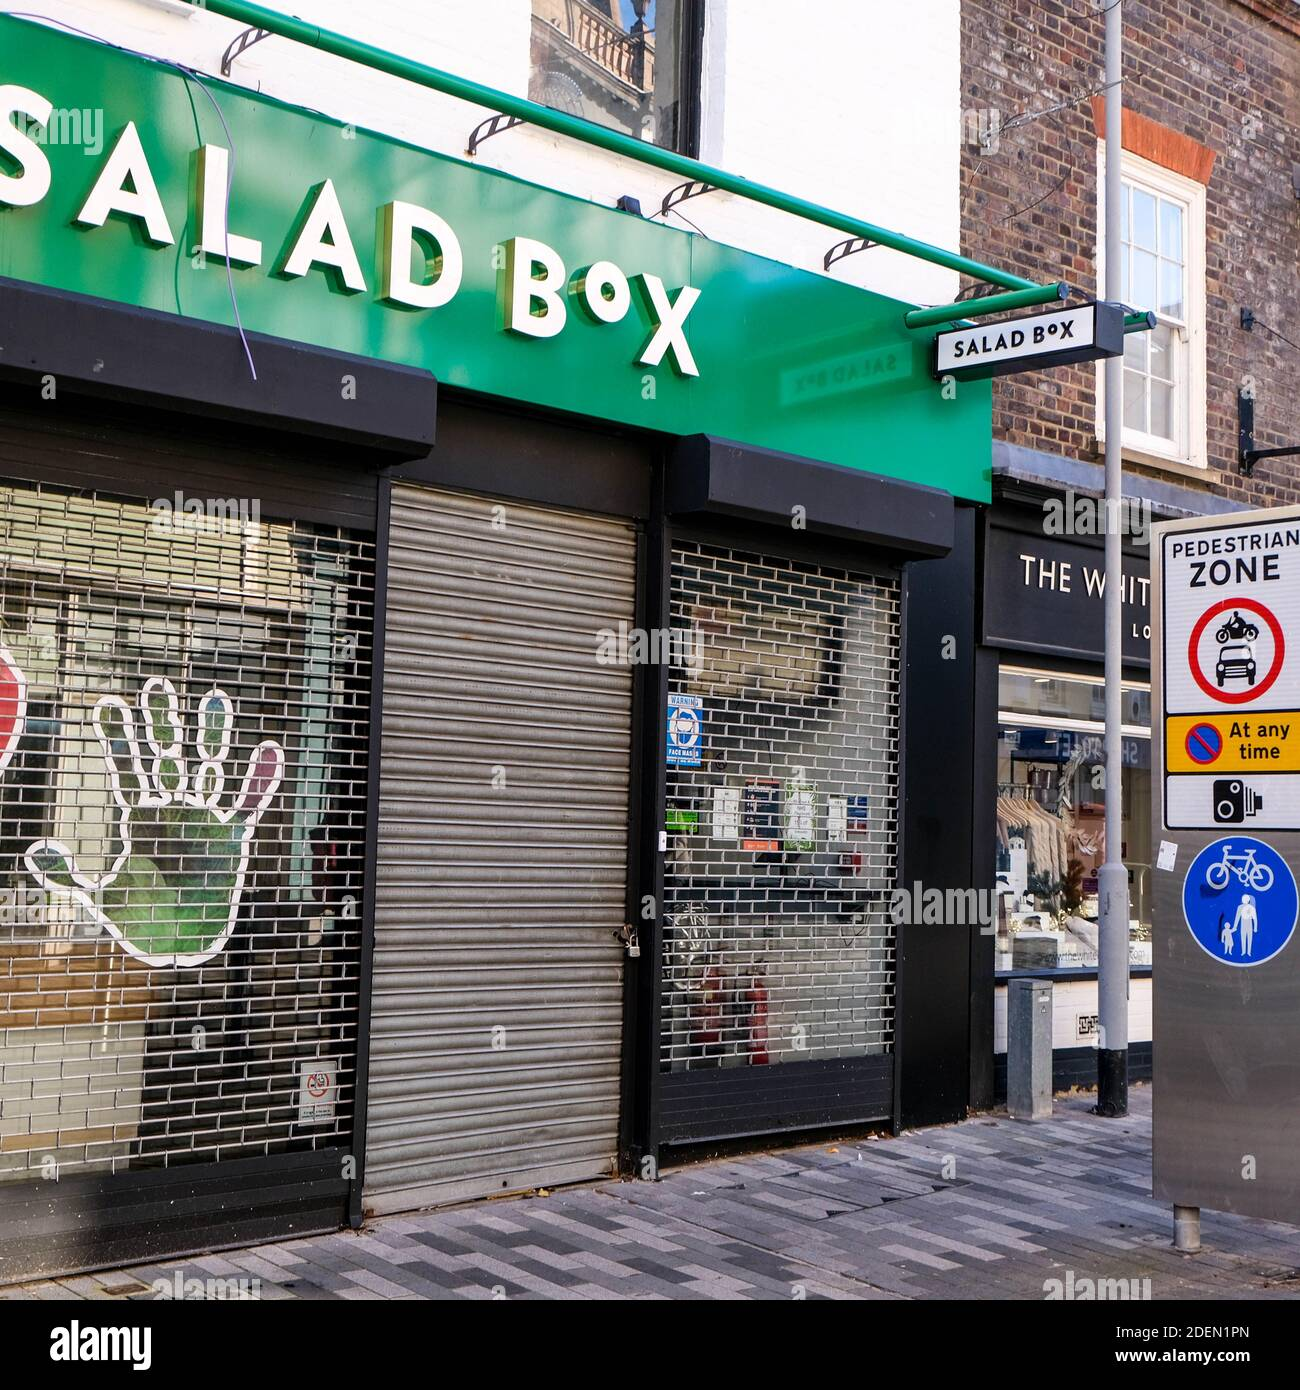 London UK, December 01 2020, Salad Box Vegetarian Restaurant With Security Shutters Down During COVID-19 Lockdown And No People Stock Photo